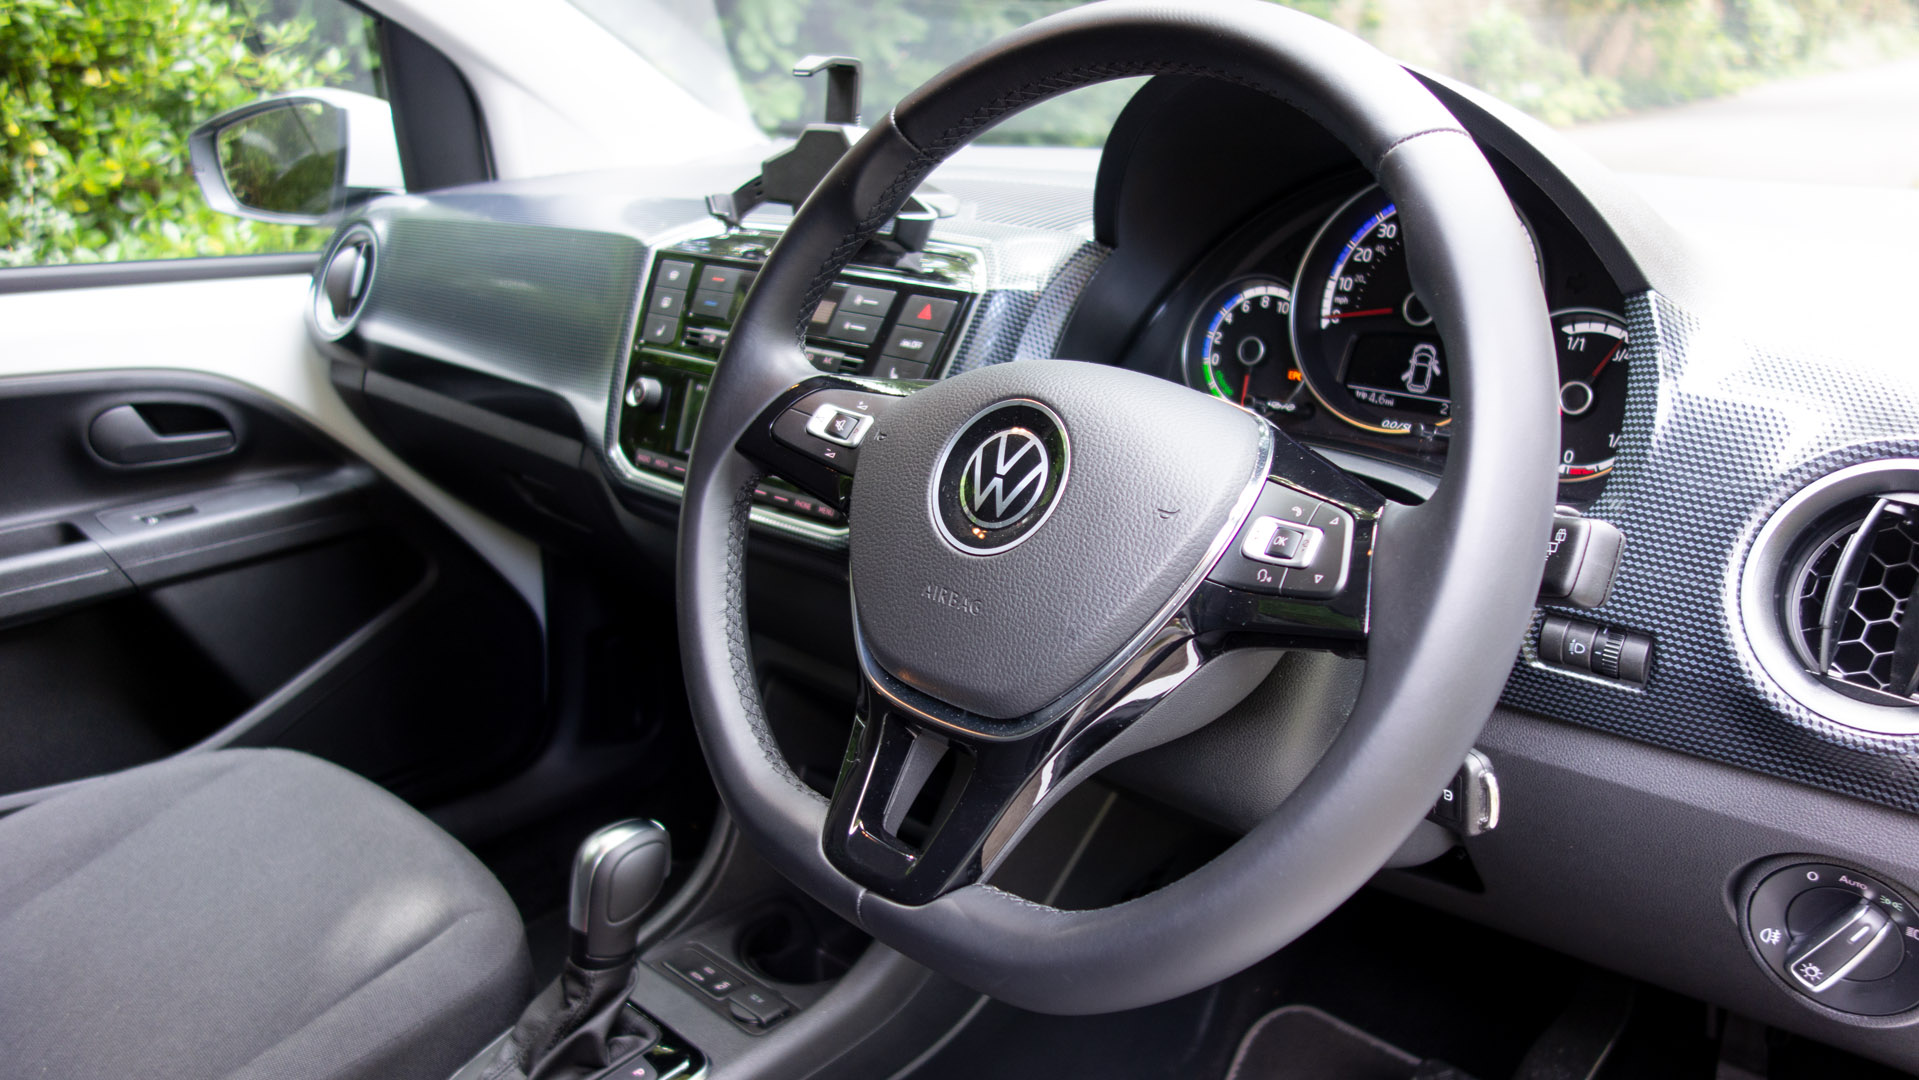 Volkswagen e-up! steering